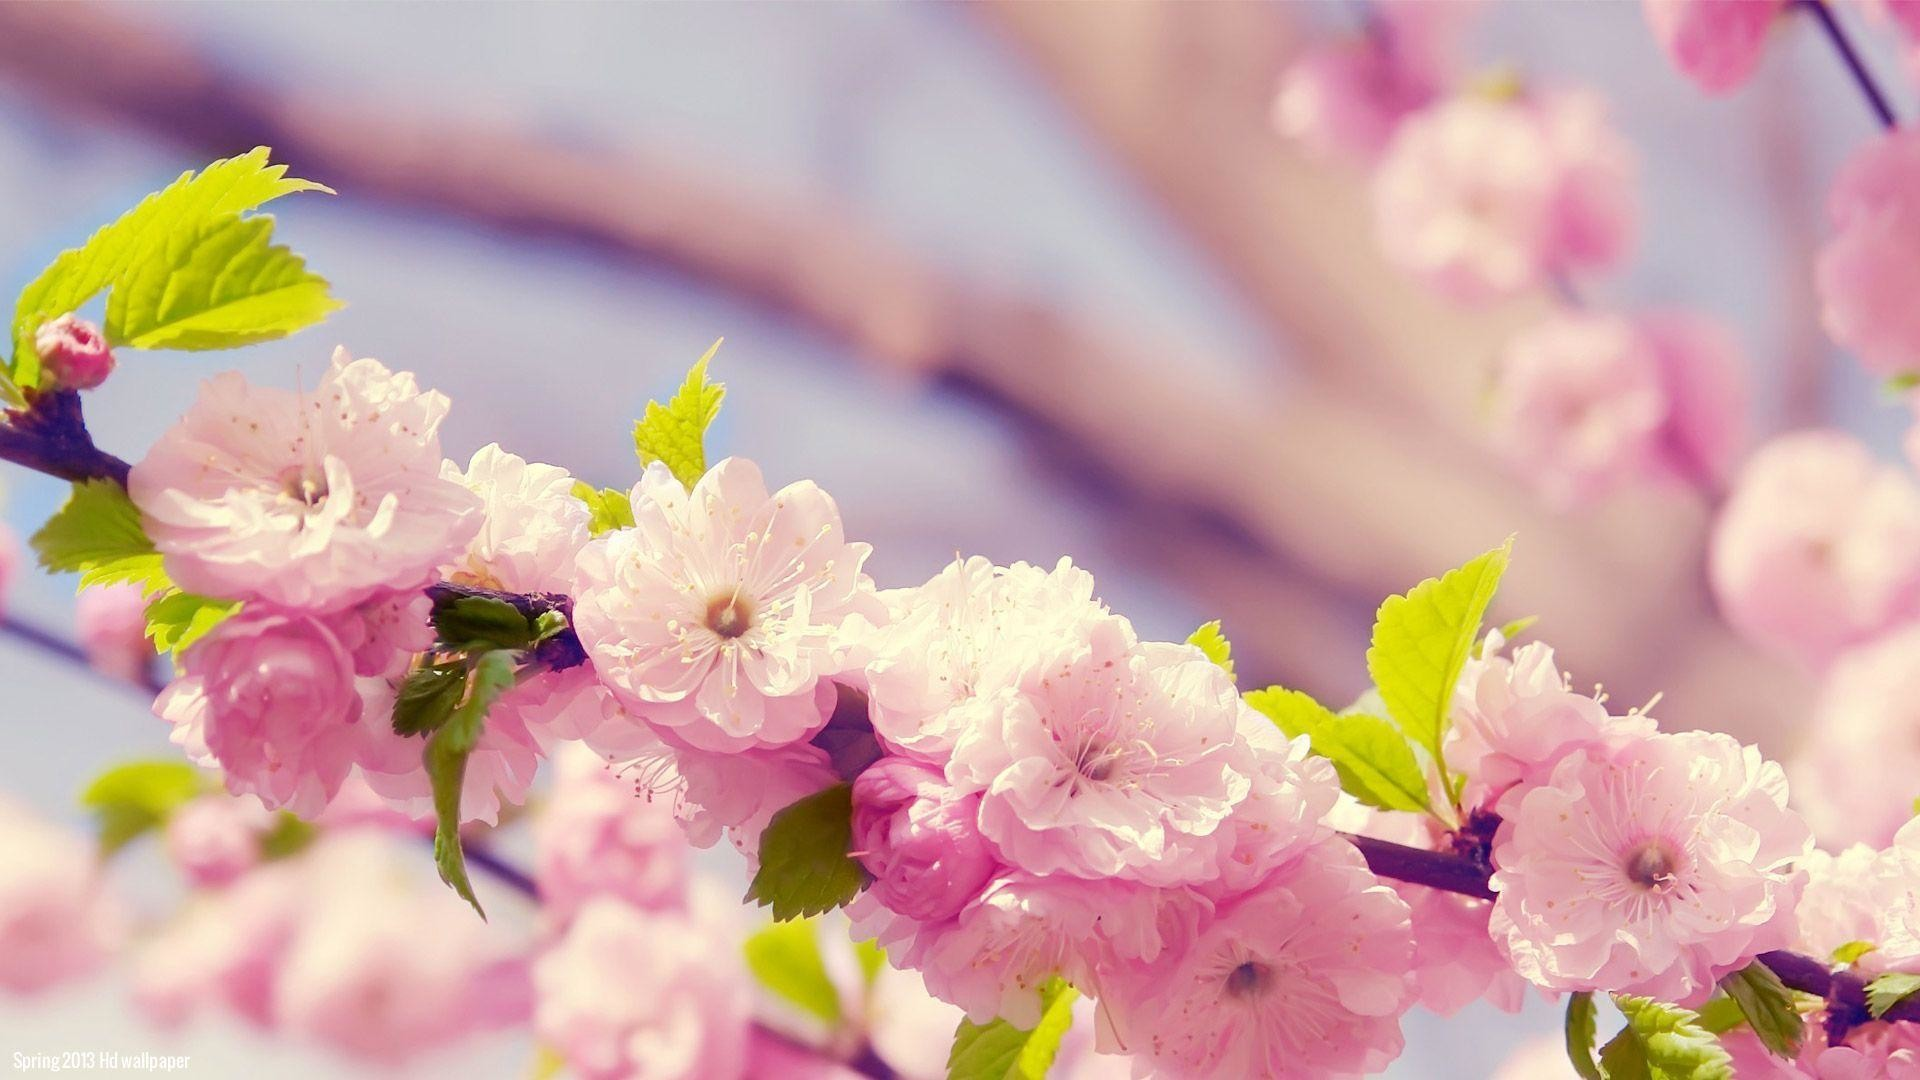 spring animals desktop wallpaper ·①